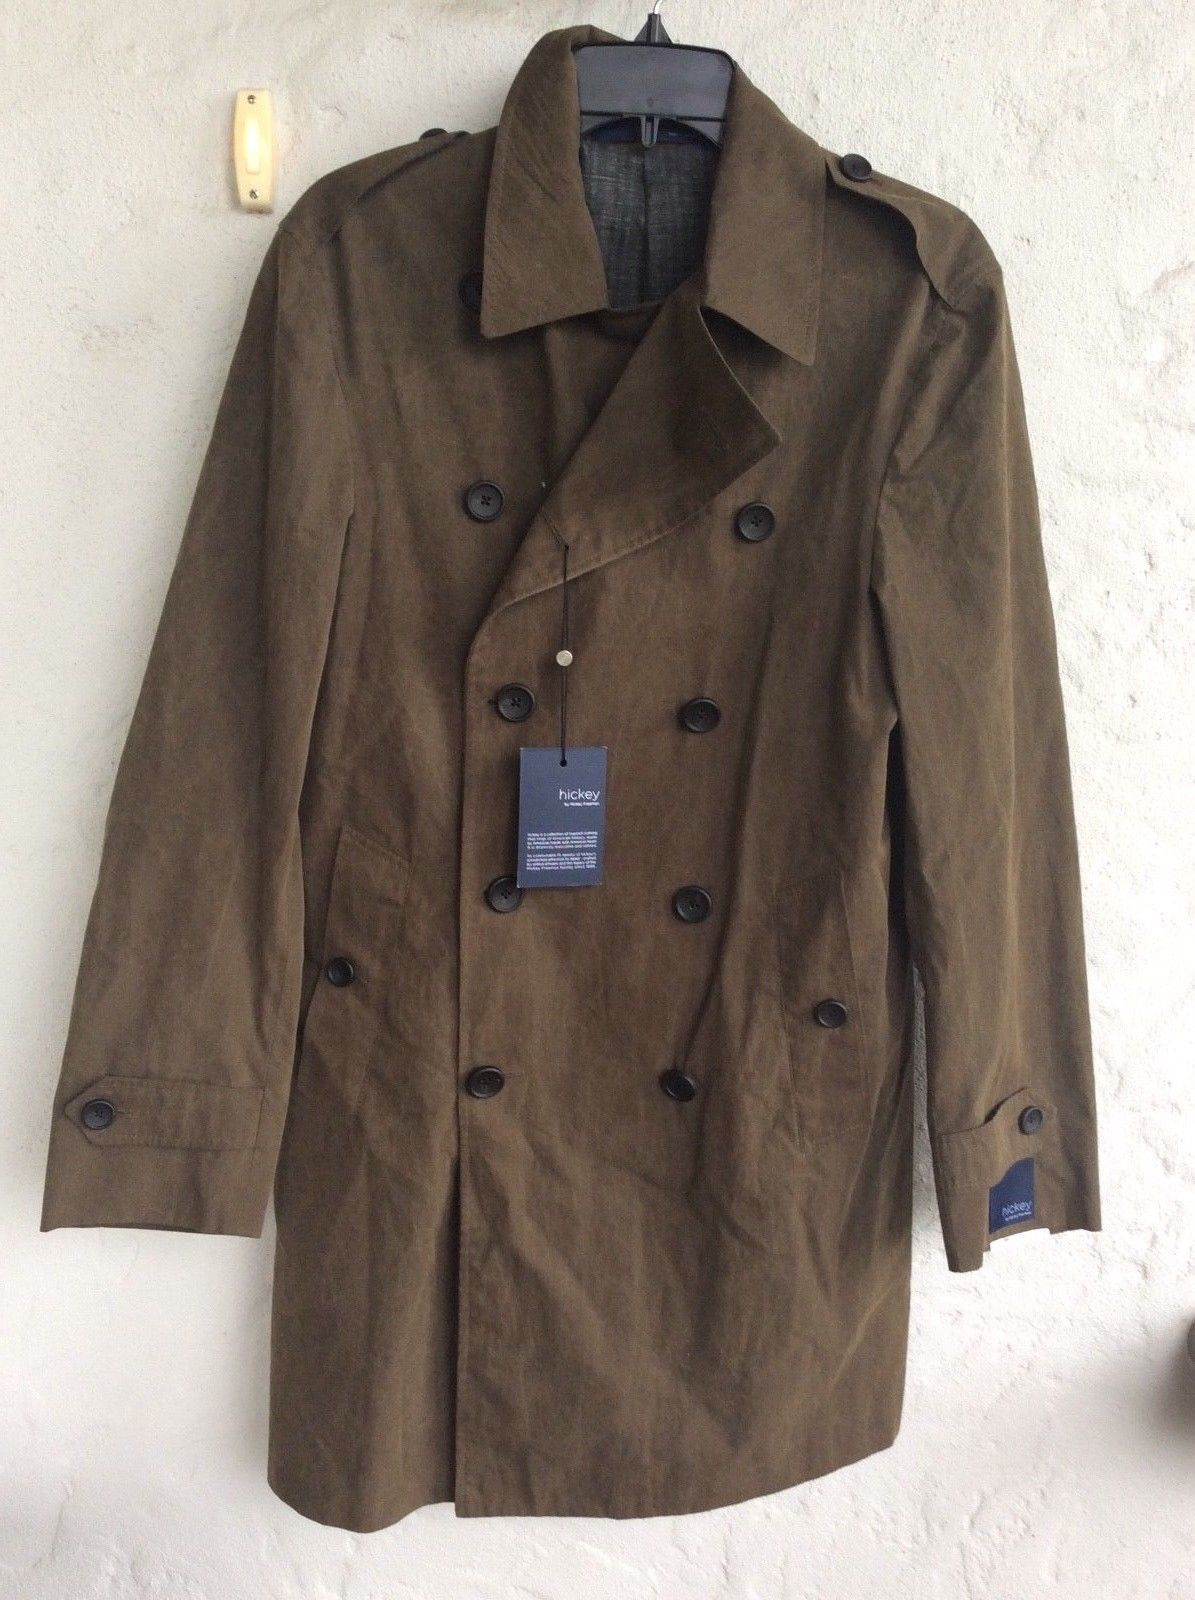 Primary image for $895.00 Hickey  Freeman Light Weight Lined Waxed Cotton top coat Olive Size 46 R